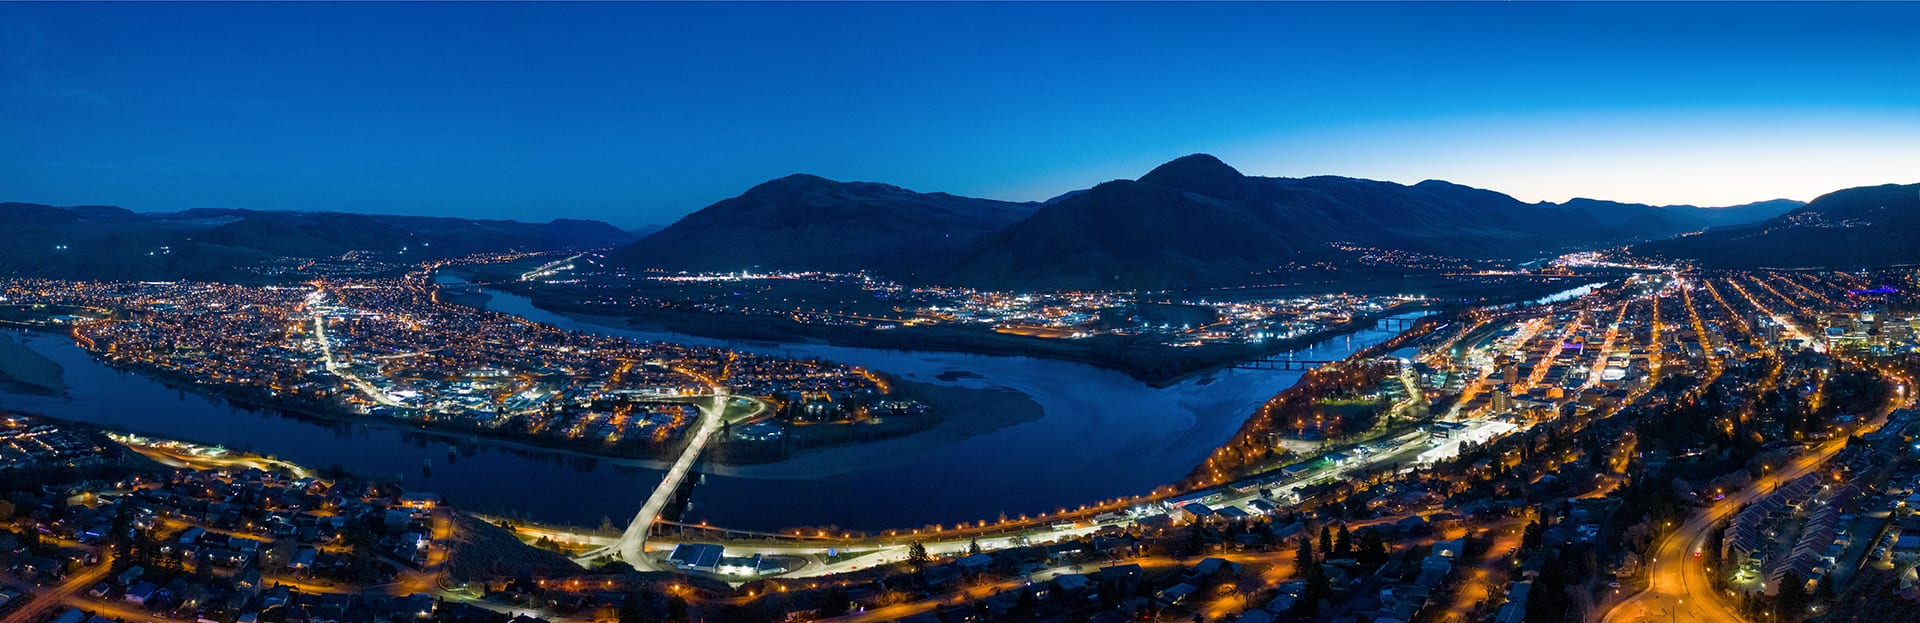 kamloops drone photography